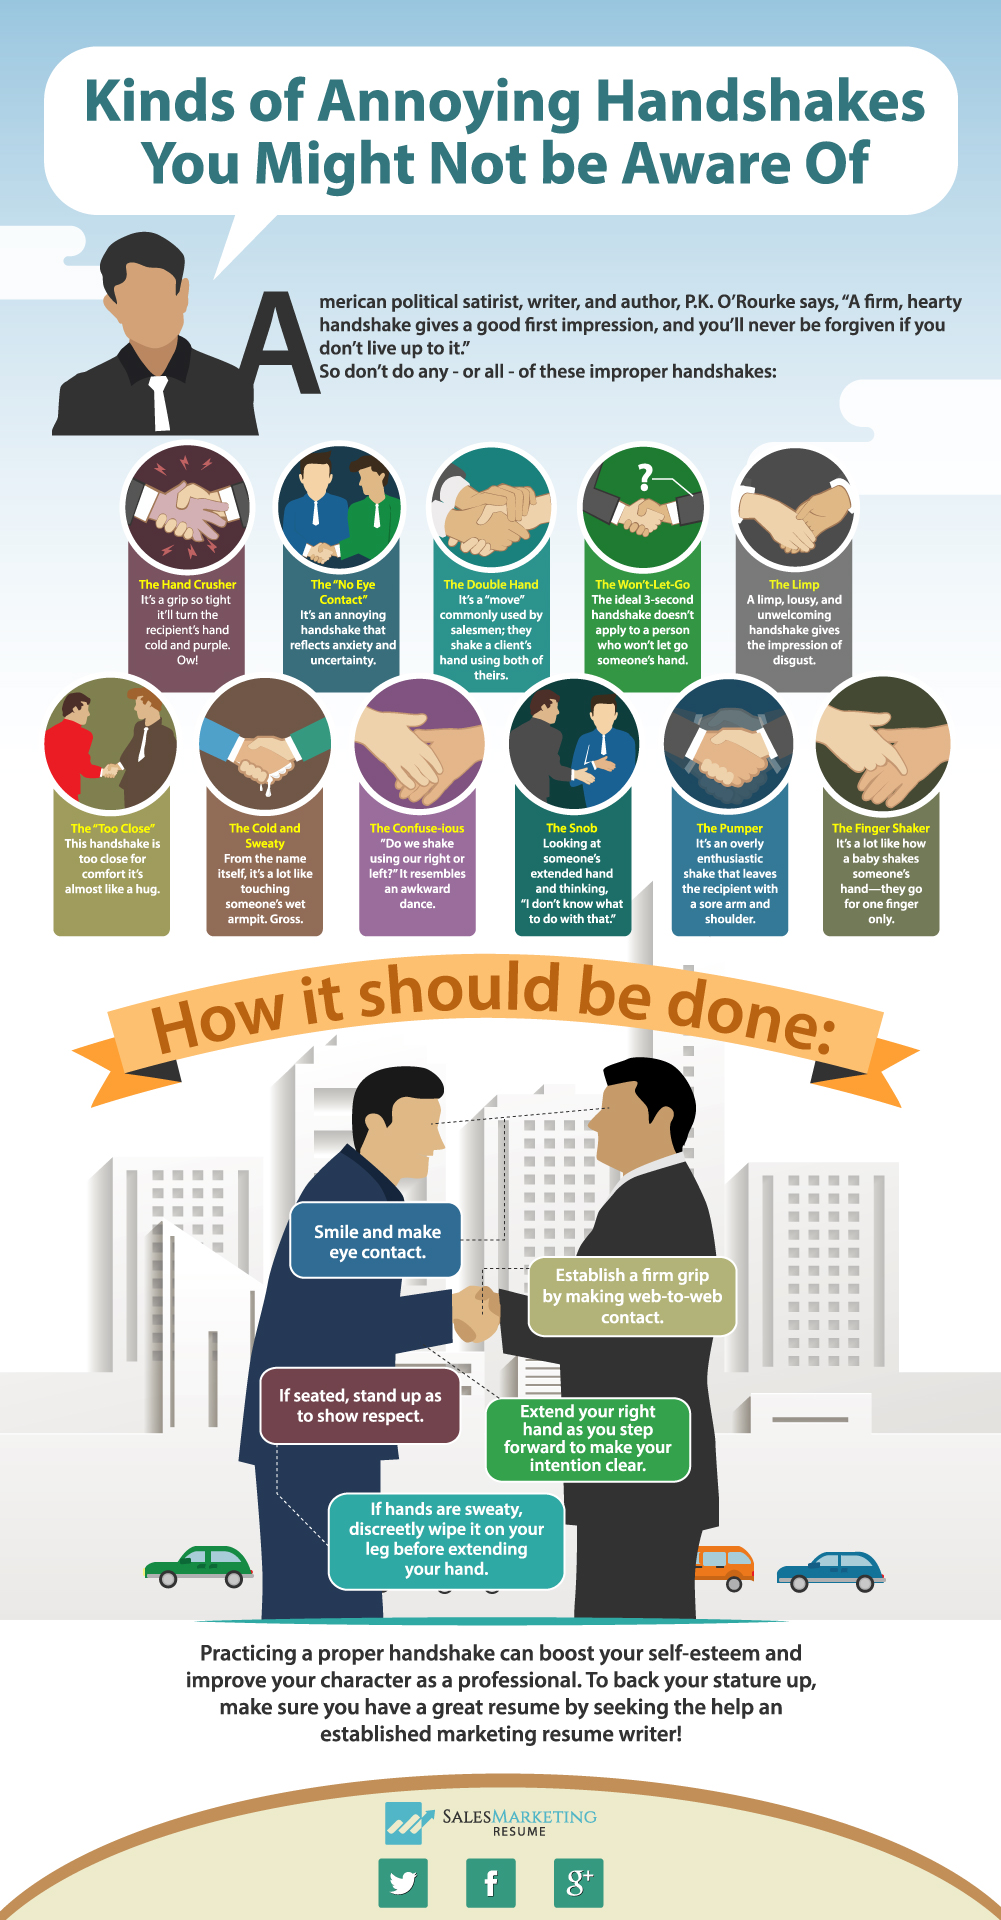 professionally-weak-handshakes-you-must-avoid-infographic_570ef65d3c609